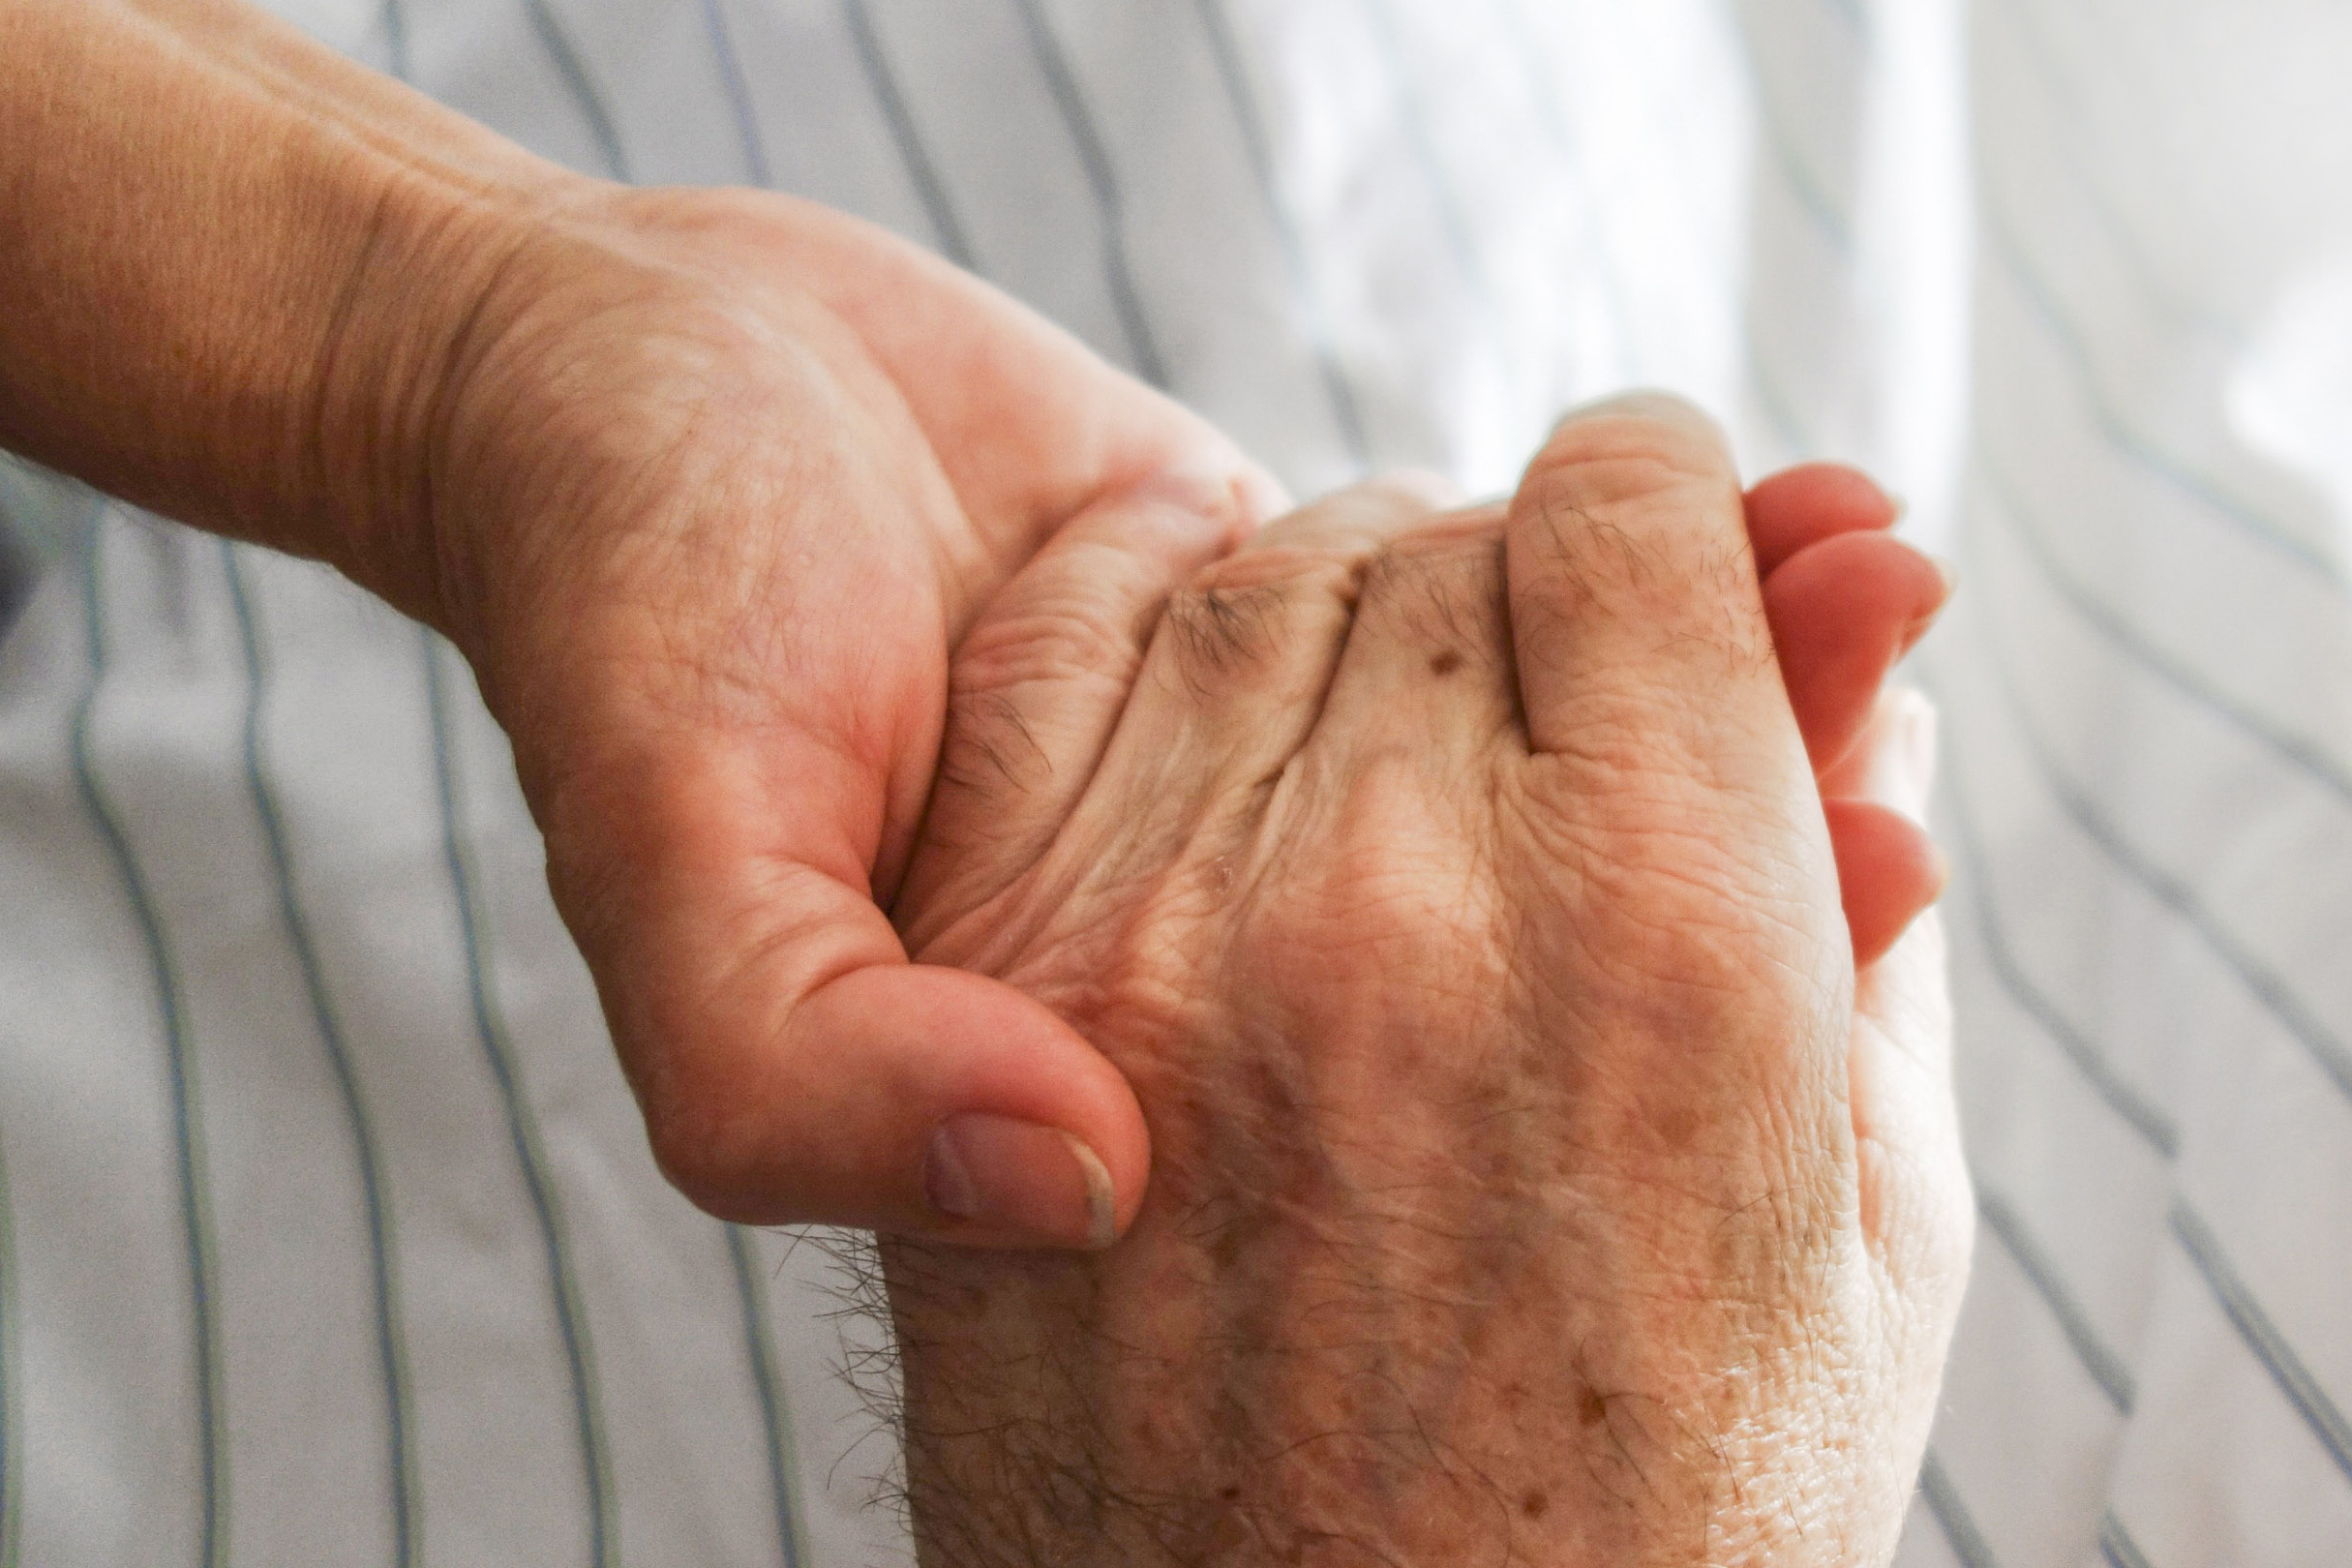 Catholic health providers across Western Australia of health have last week come together to release a joint statement against the state's proposed controversial voluntary euthanasia laws. Photo: Sourced.